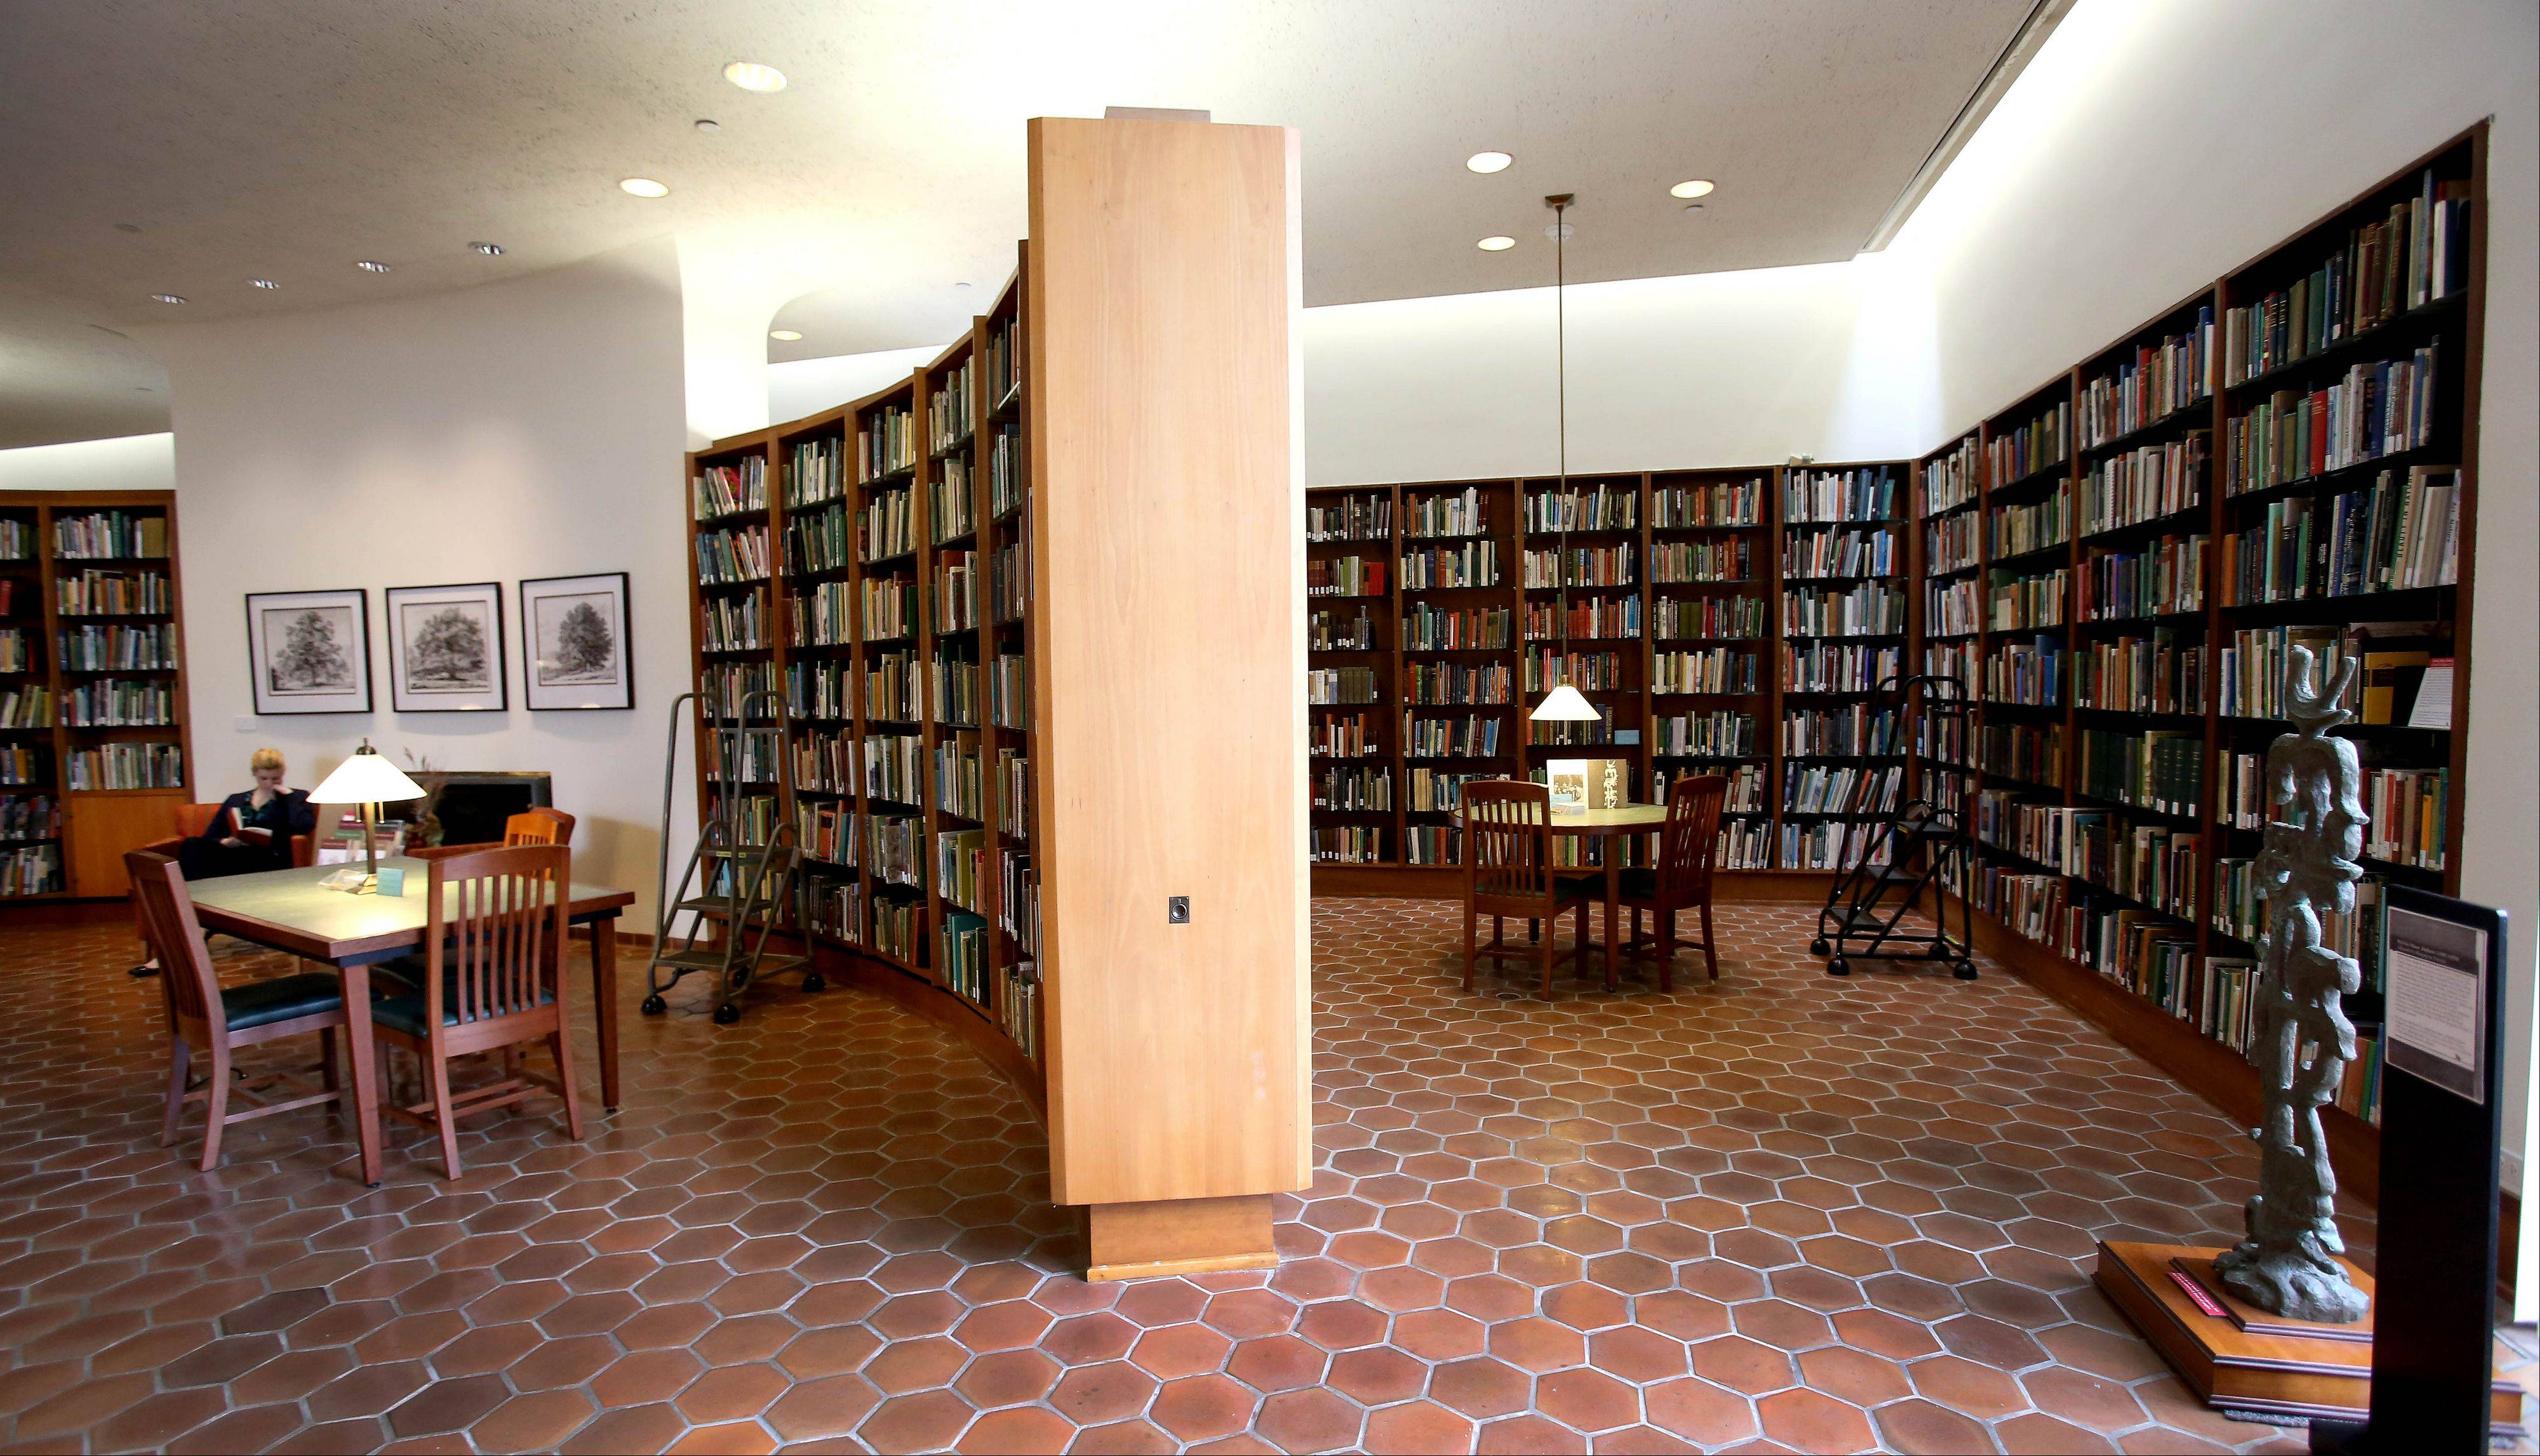 Designed by noted Chicago architect Harry Weese, the Sterling Morton Library located in the Morton Arboretum's administration building includes carved cherry bookcases and, just outside the window, the intimate May T. Watts Reading Garden.